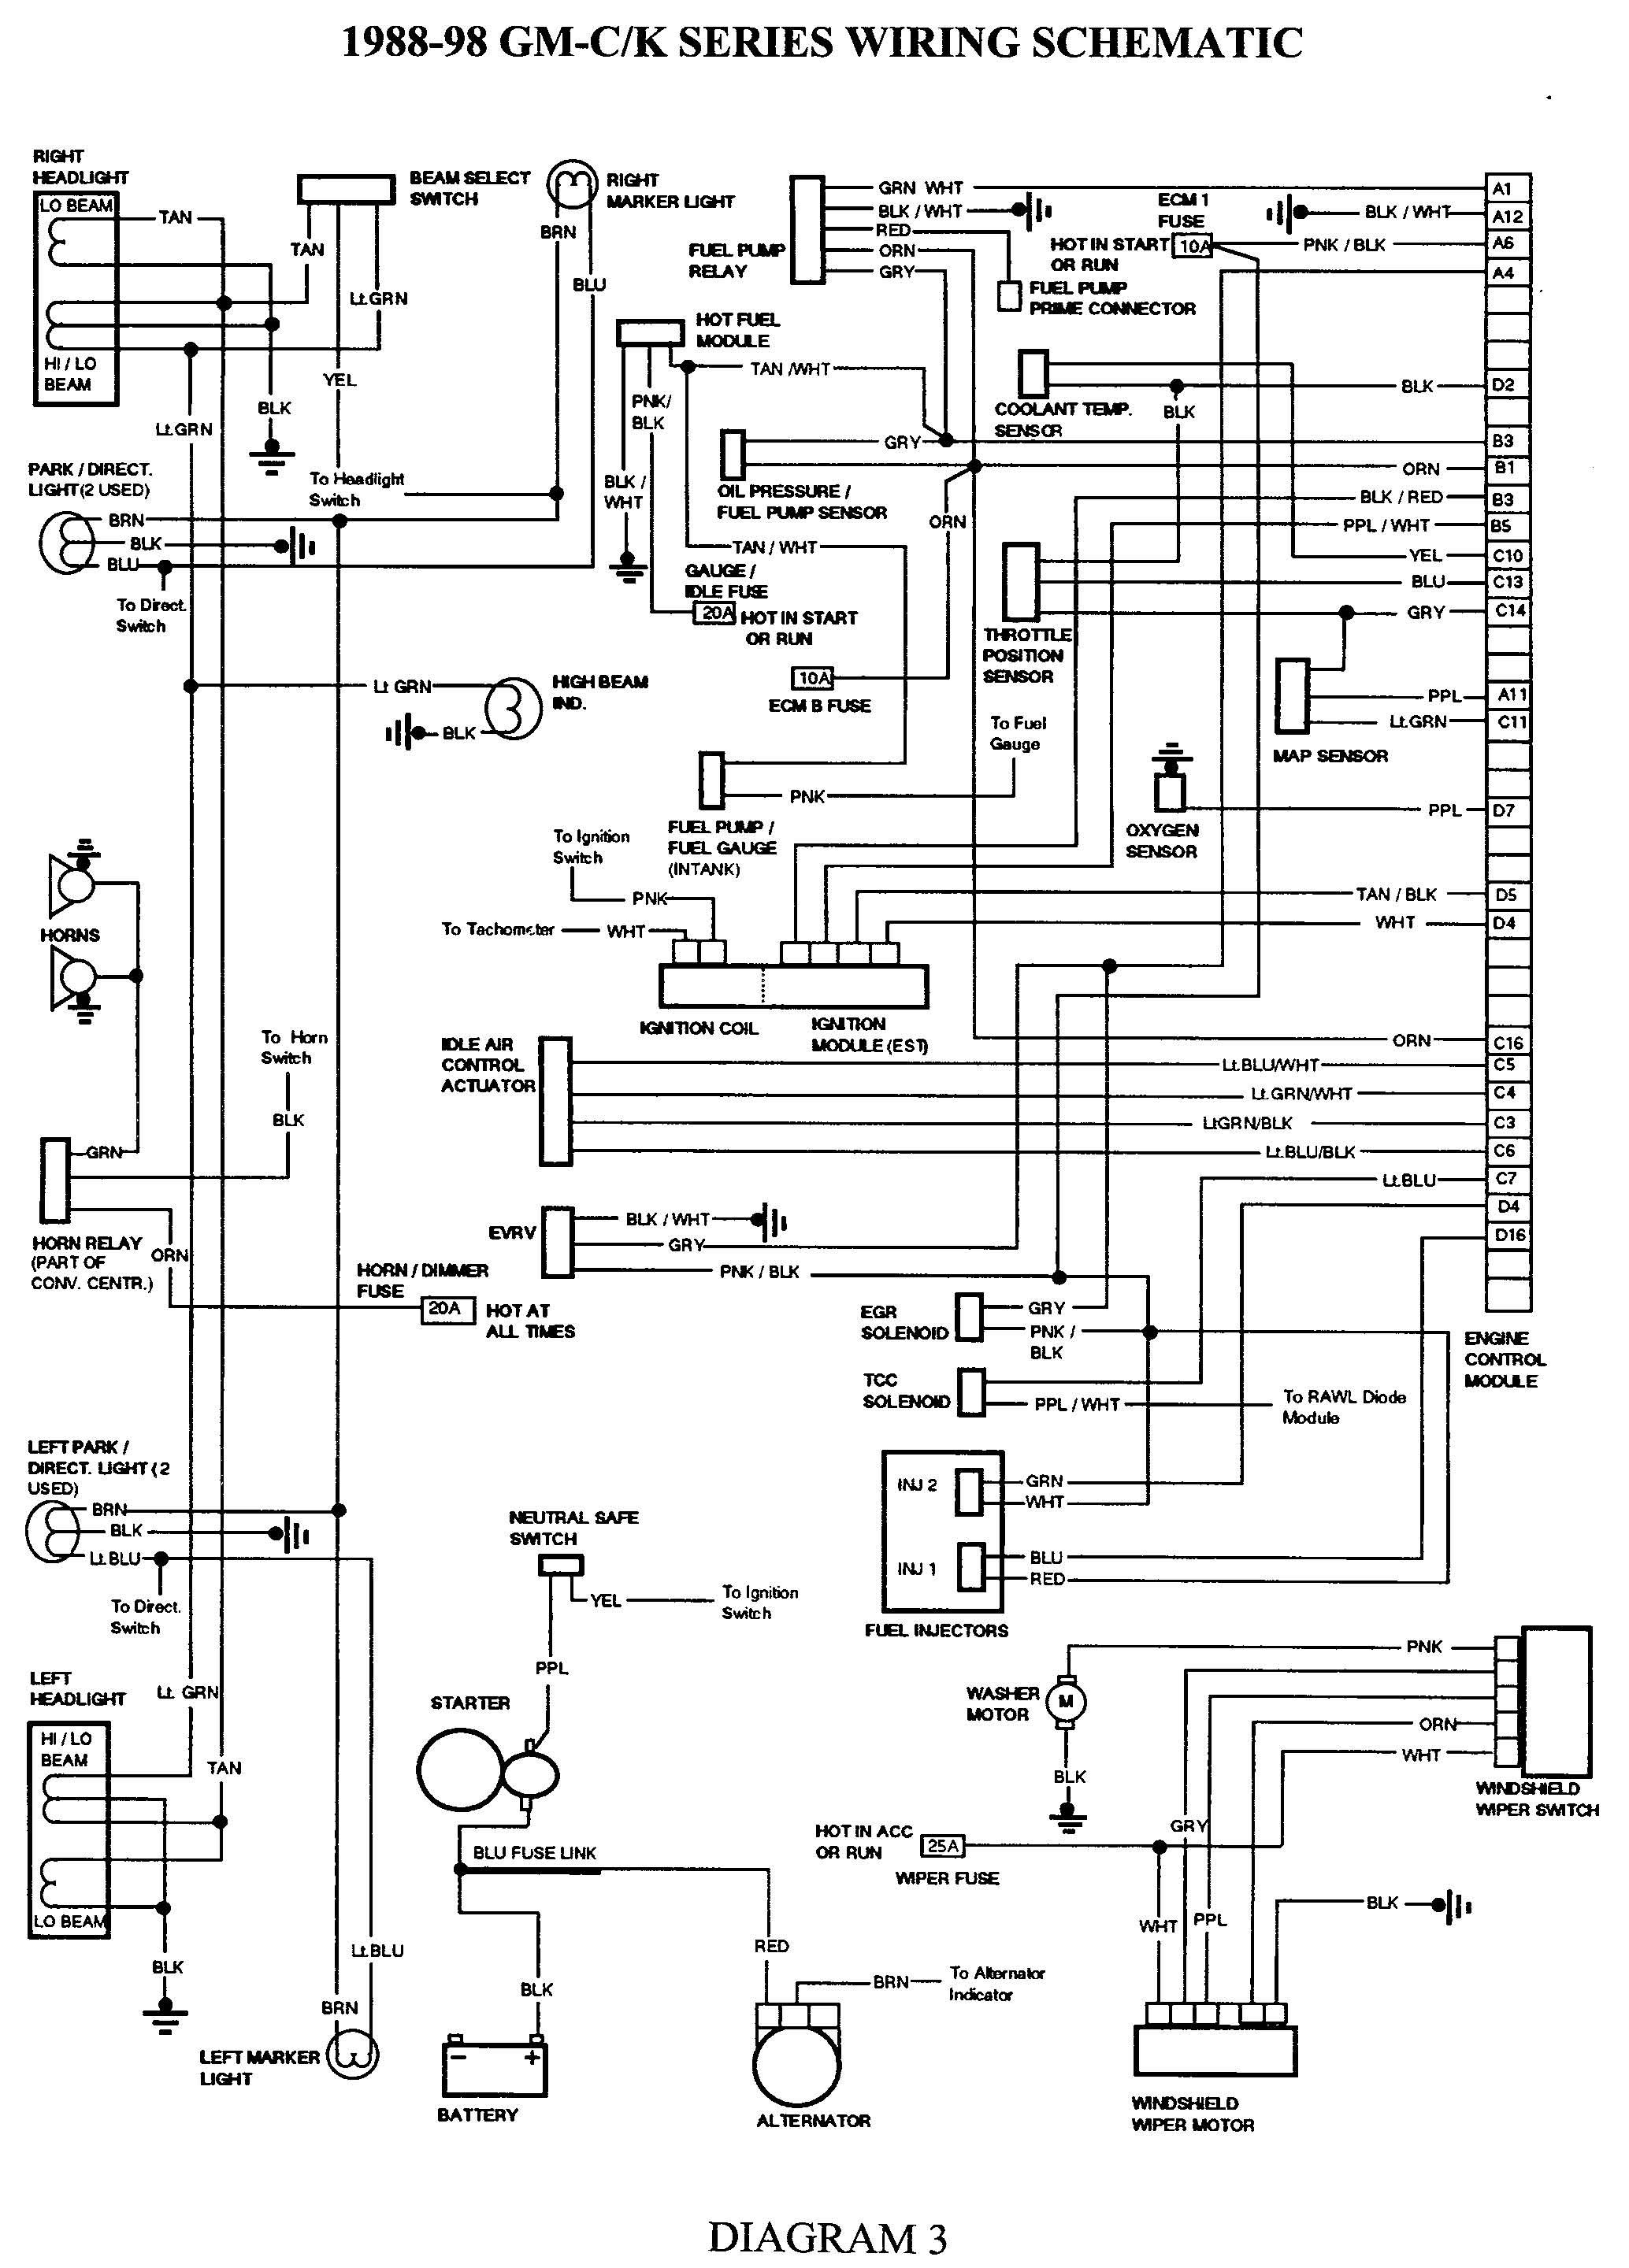 1992 gmc topkick wiring diagram schematic wiring diagram third level1992 gmc engine diagram wiring schematic wiring diagram third level gmc topkick fuel pump 1992 gmc topkick wiring diagram schematic